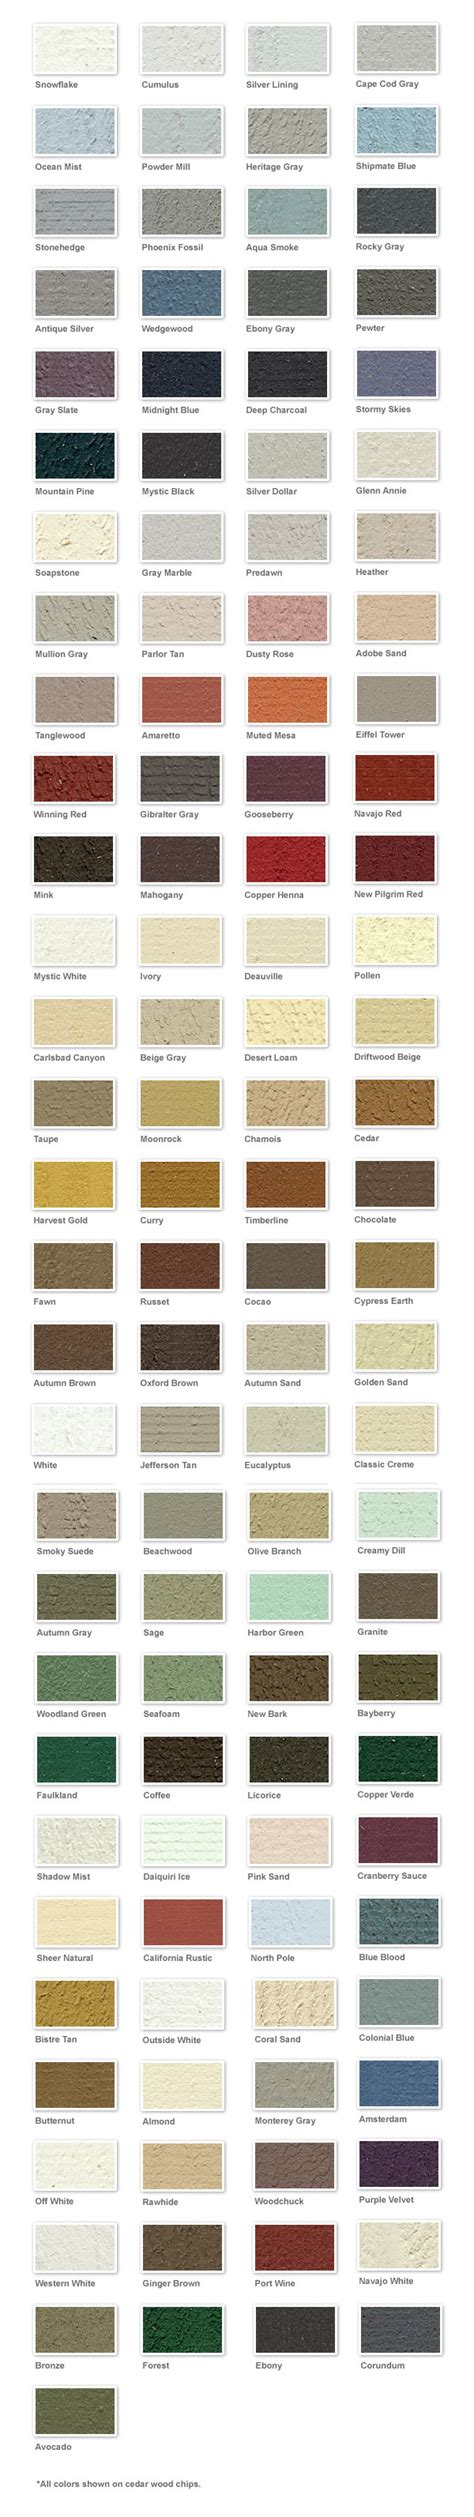 olympic color exterior wood finishes exterior stain sikkens cetol